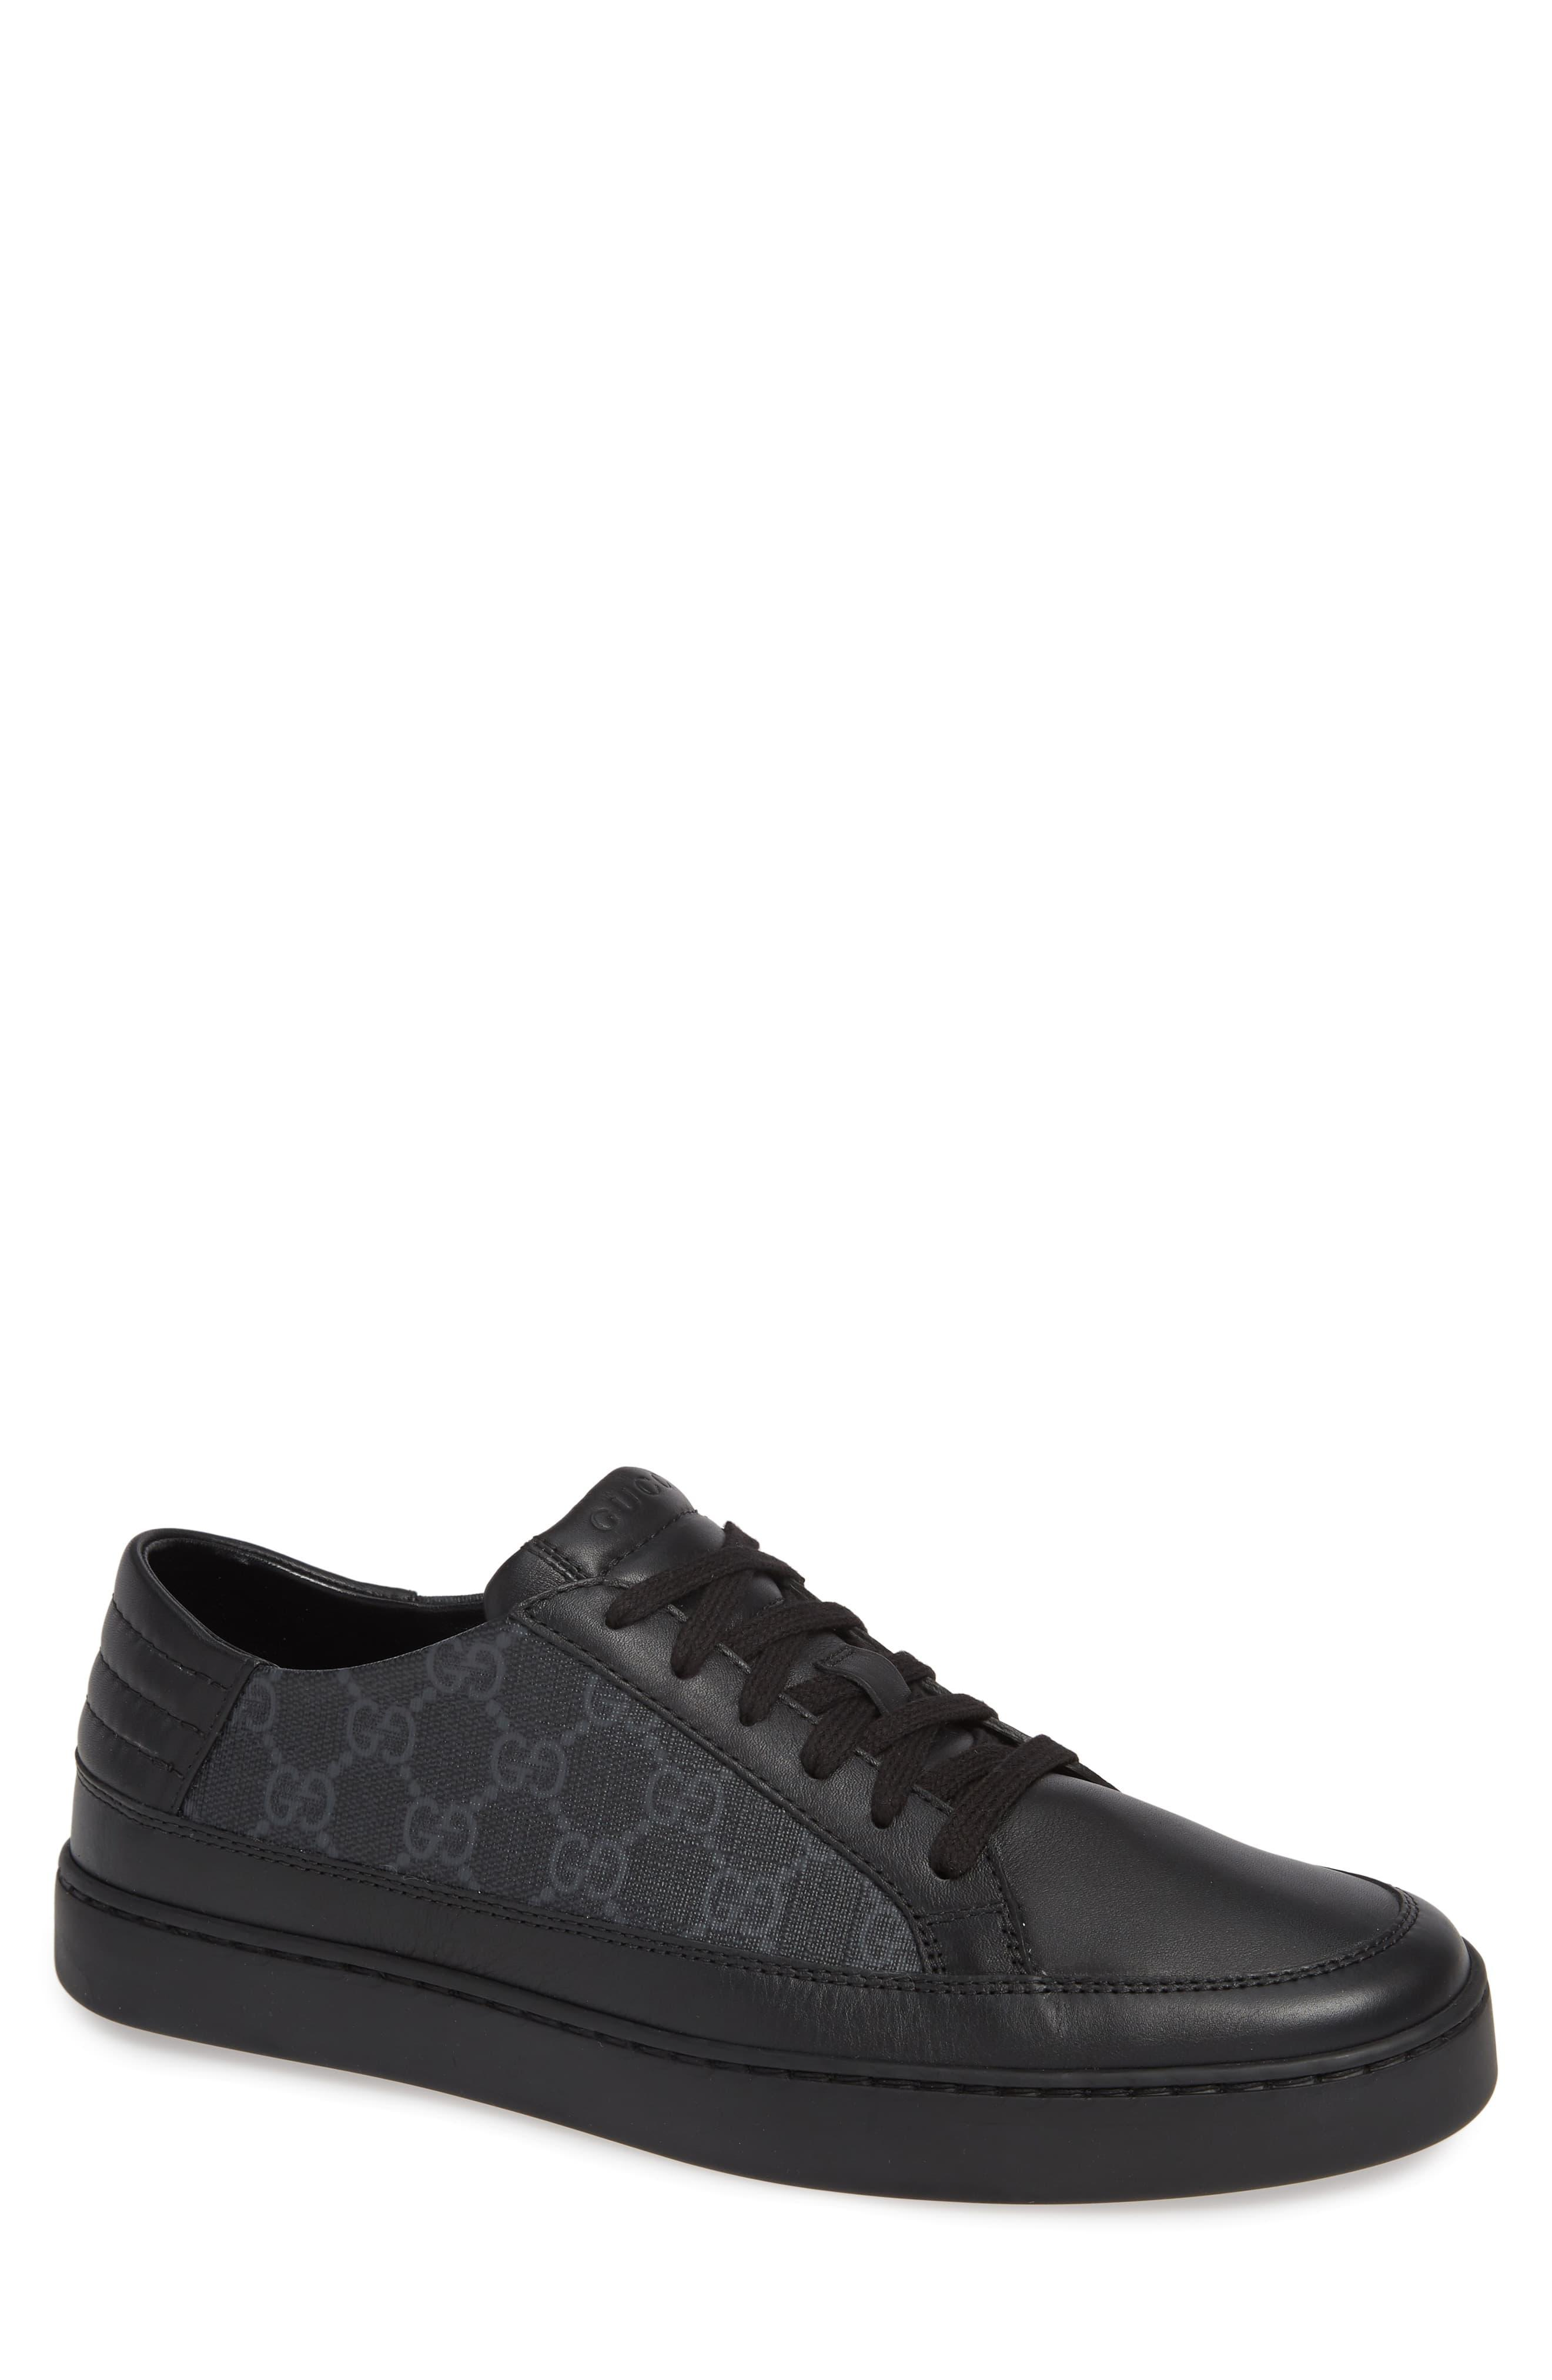 Common GG Supreme Low-top Sneakers